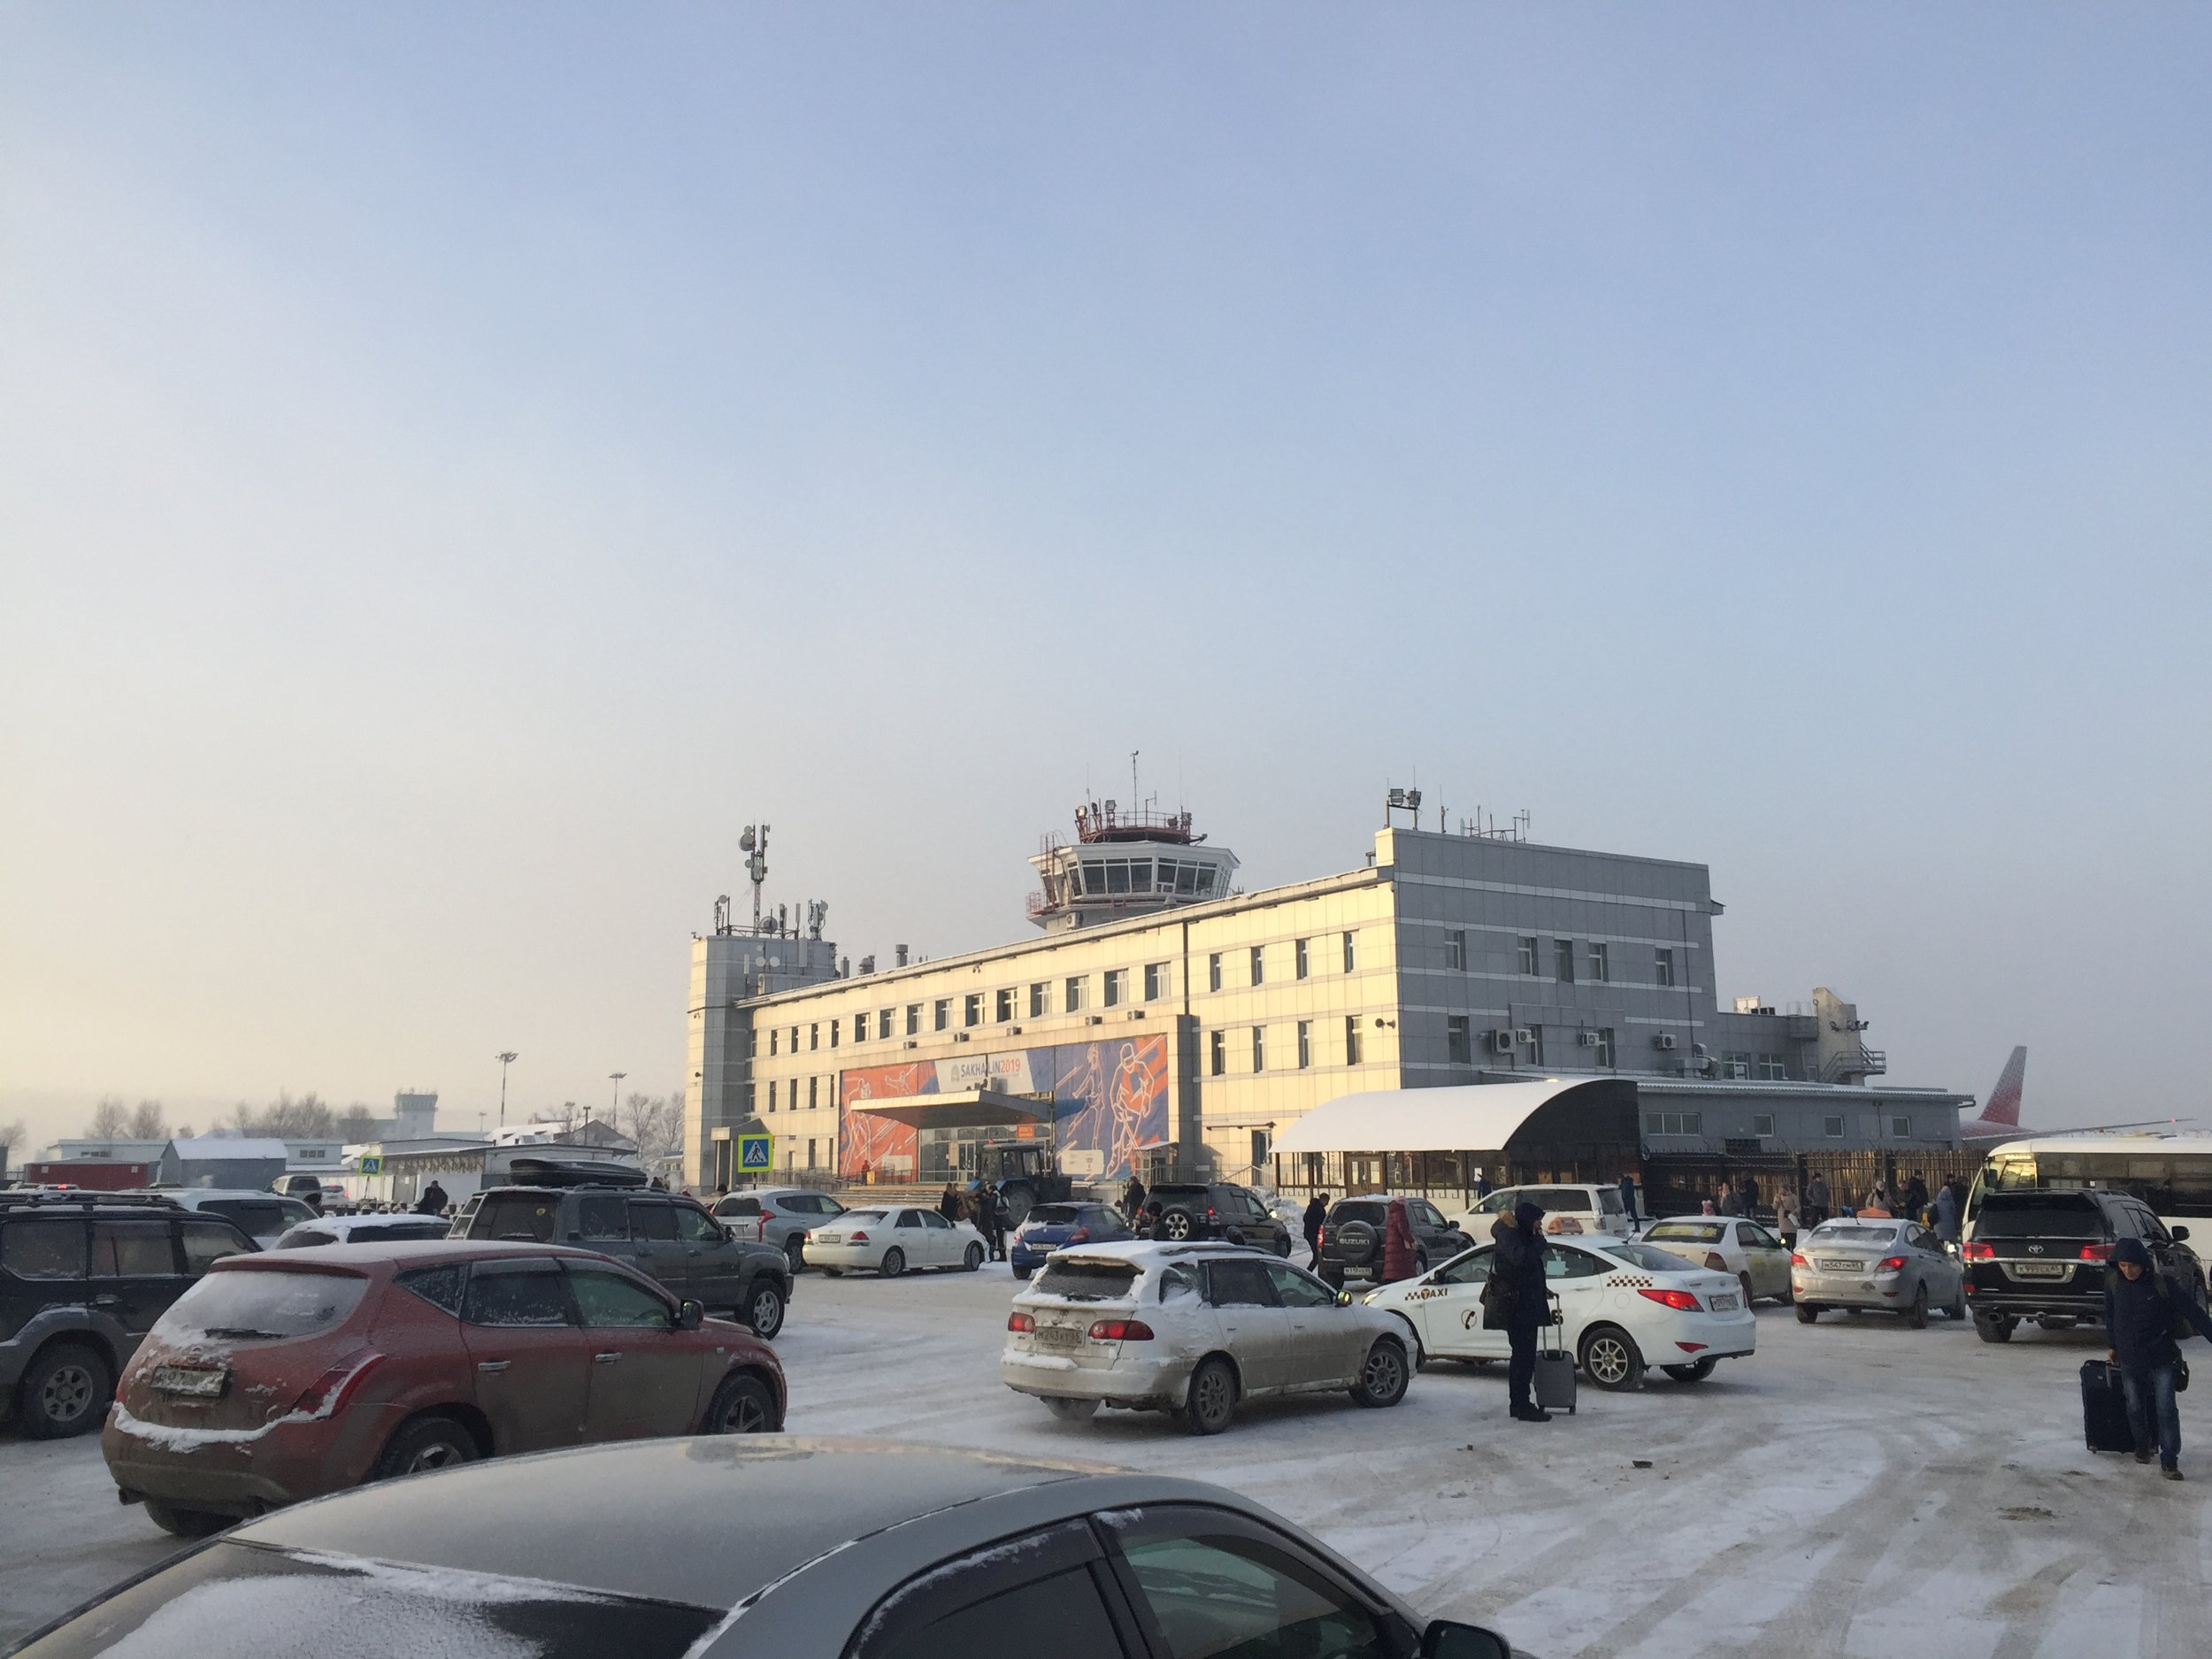 Peak hour at Yuzhno-Sakhalinsk airport: shortly after the arrival of the Rossiya daily Moscow flight, the outside of the terminal filled with cars of people coming to pick up their friends and relatives